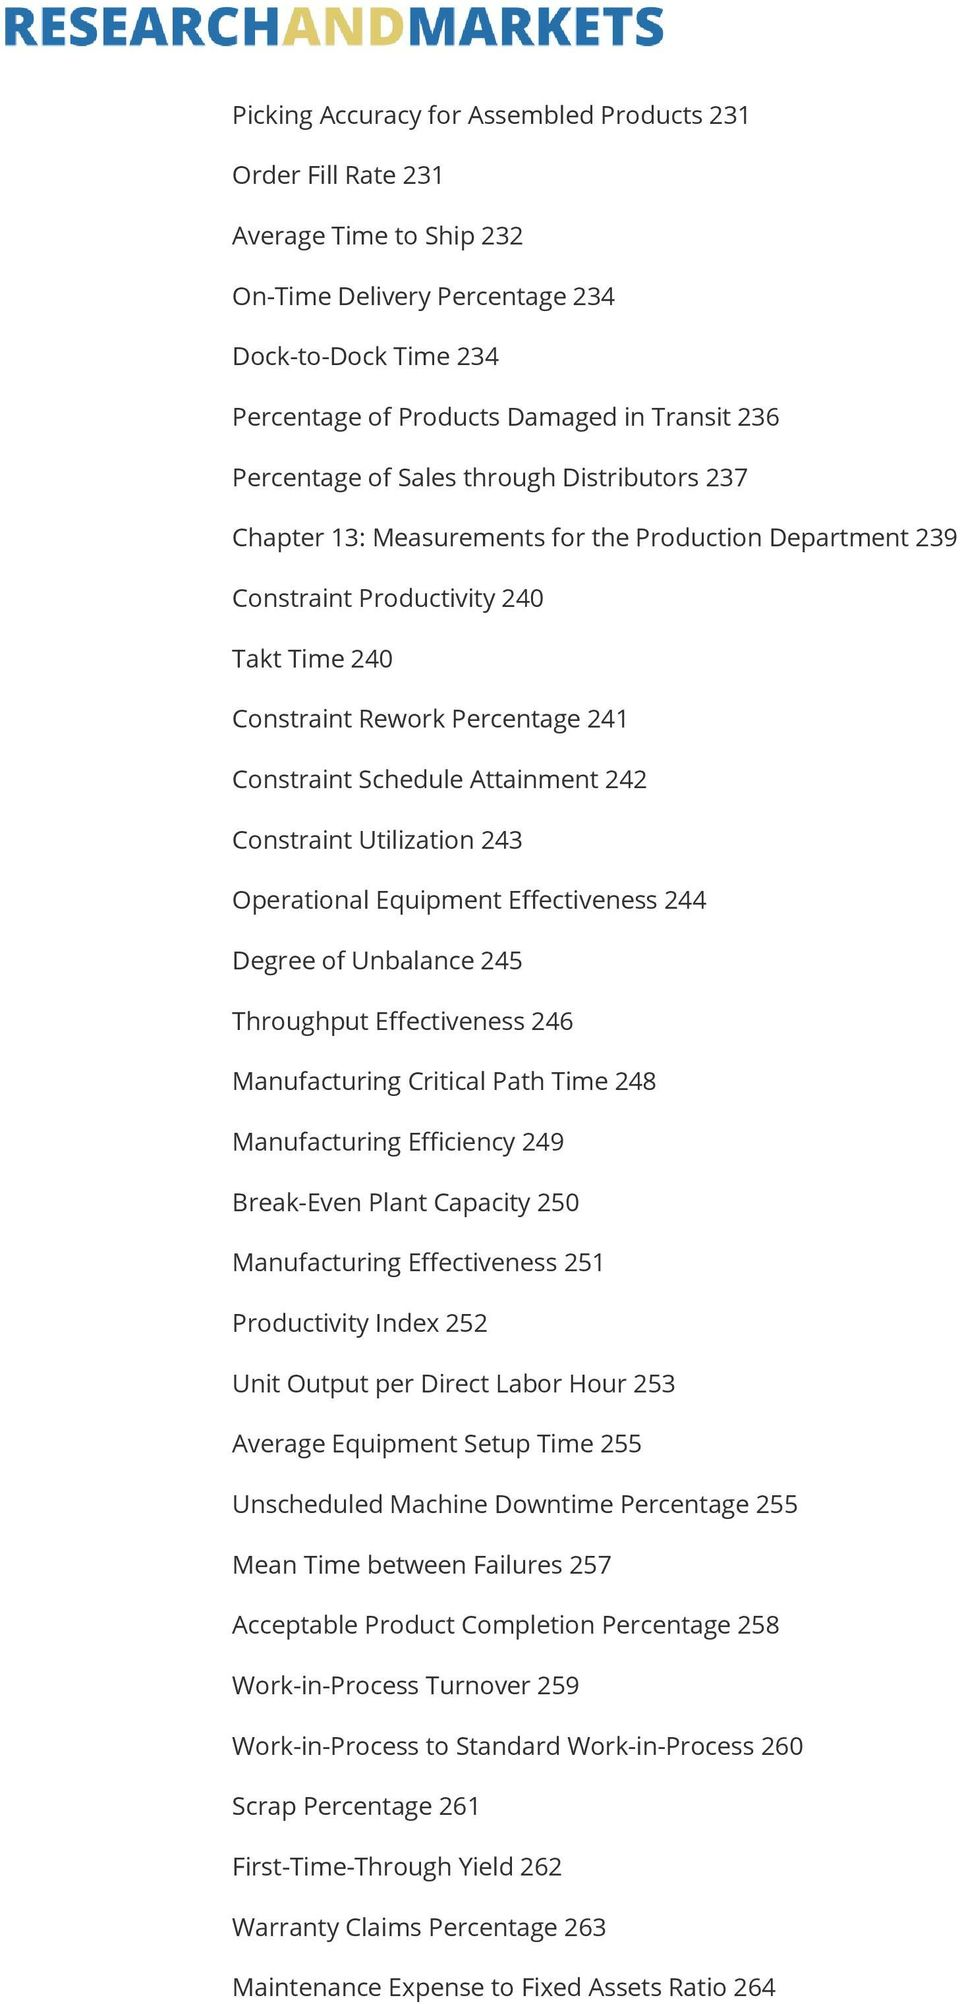 242 Constraint Utilization 243 Operational Equipment Effectiveness 244 Degree of Unbalance 245 Throughput Effectiveness 246 Manufacturing Critical Path Time 248 Manufacturing Efficiency 249